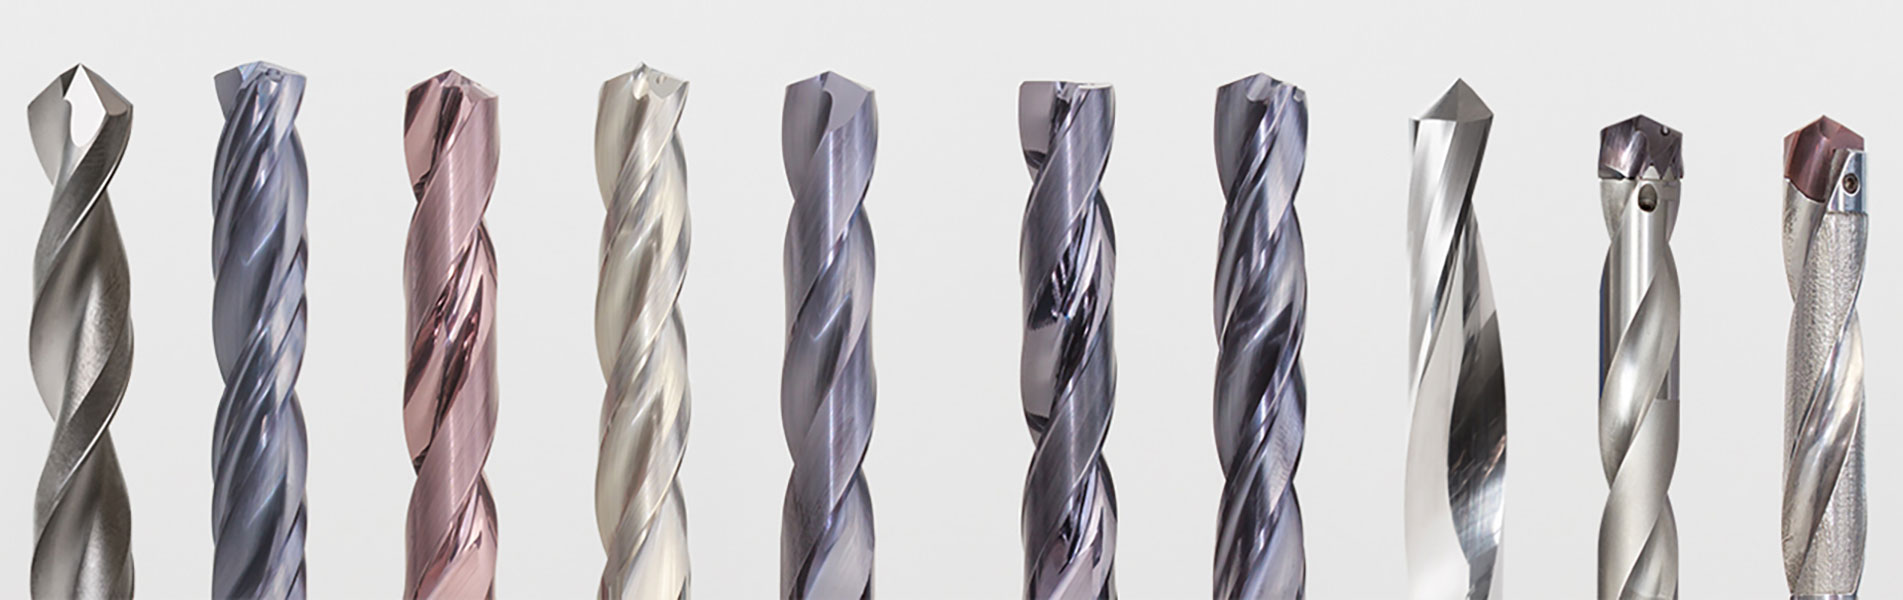 Product range solid carbide drills